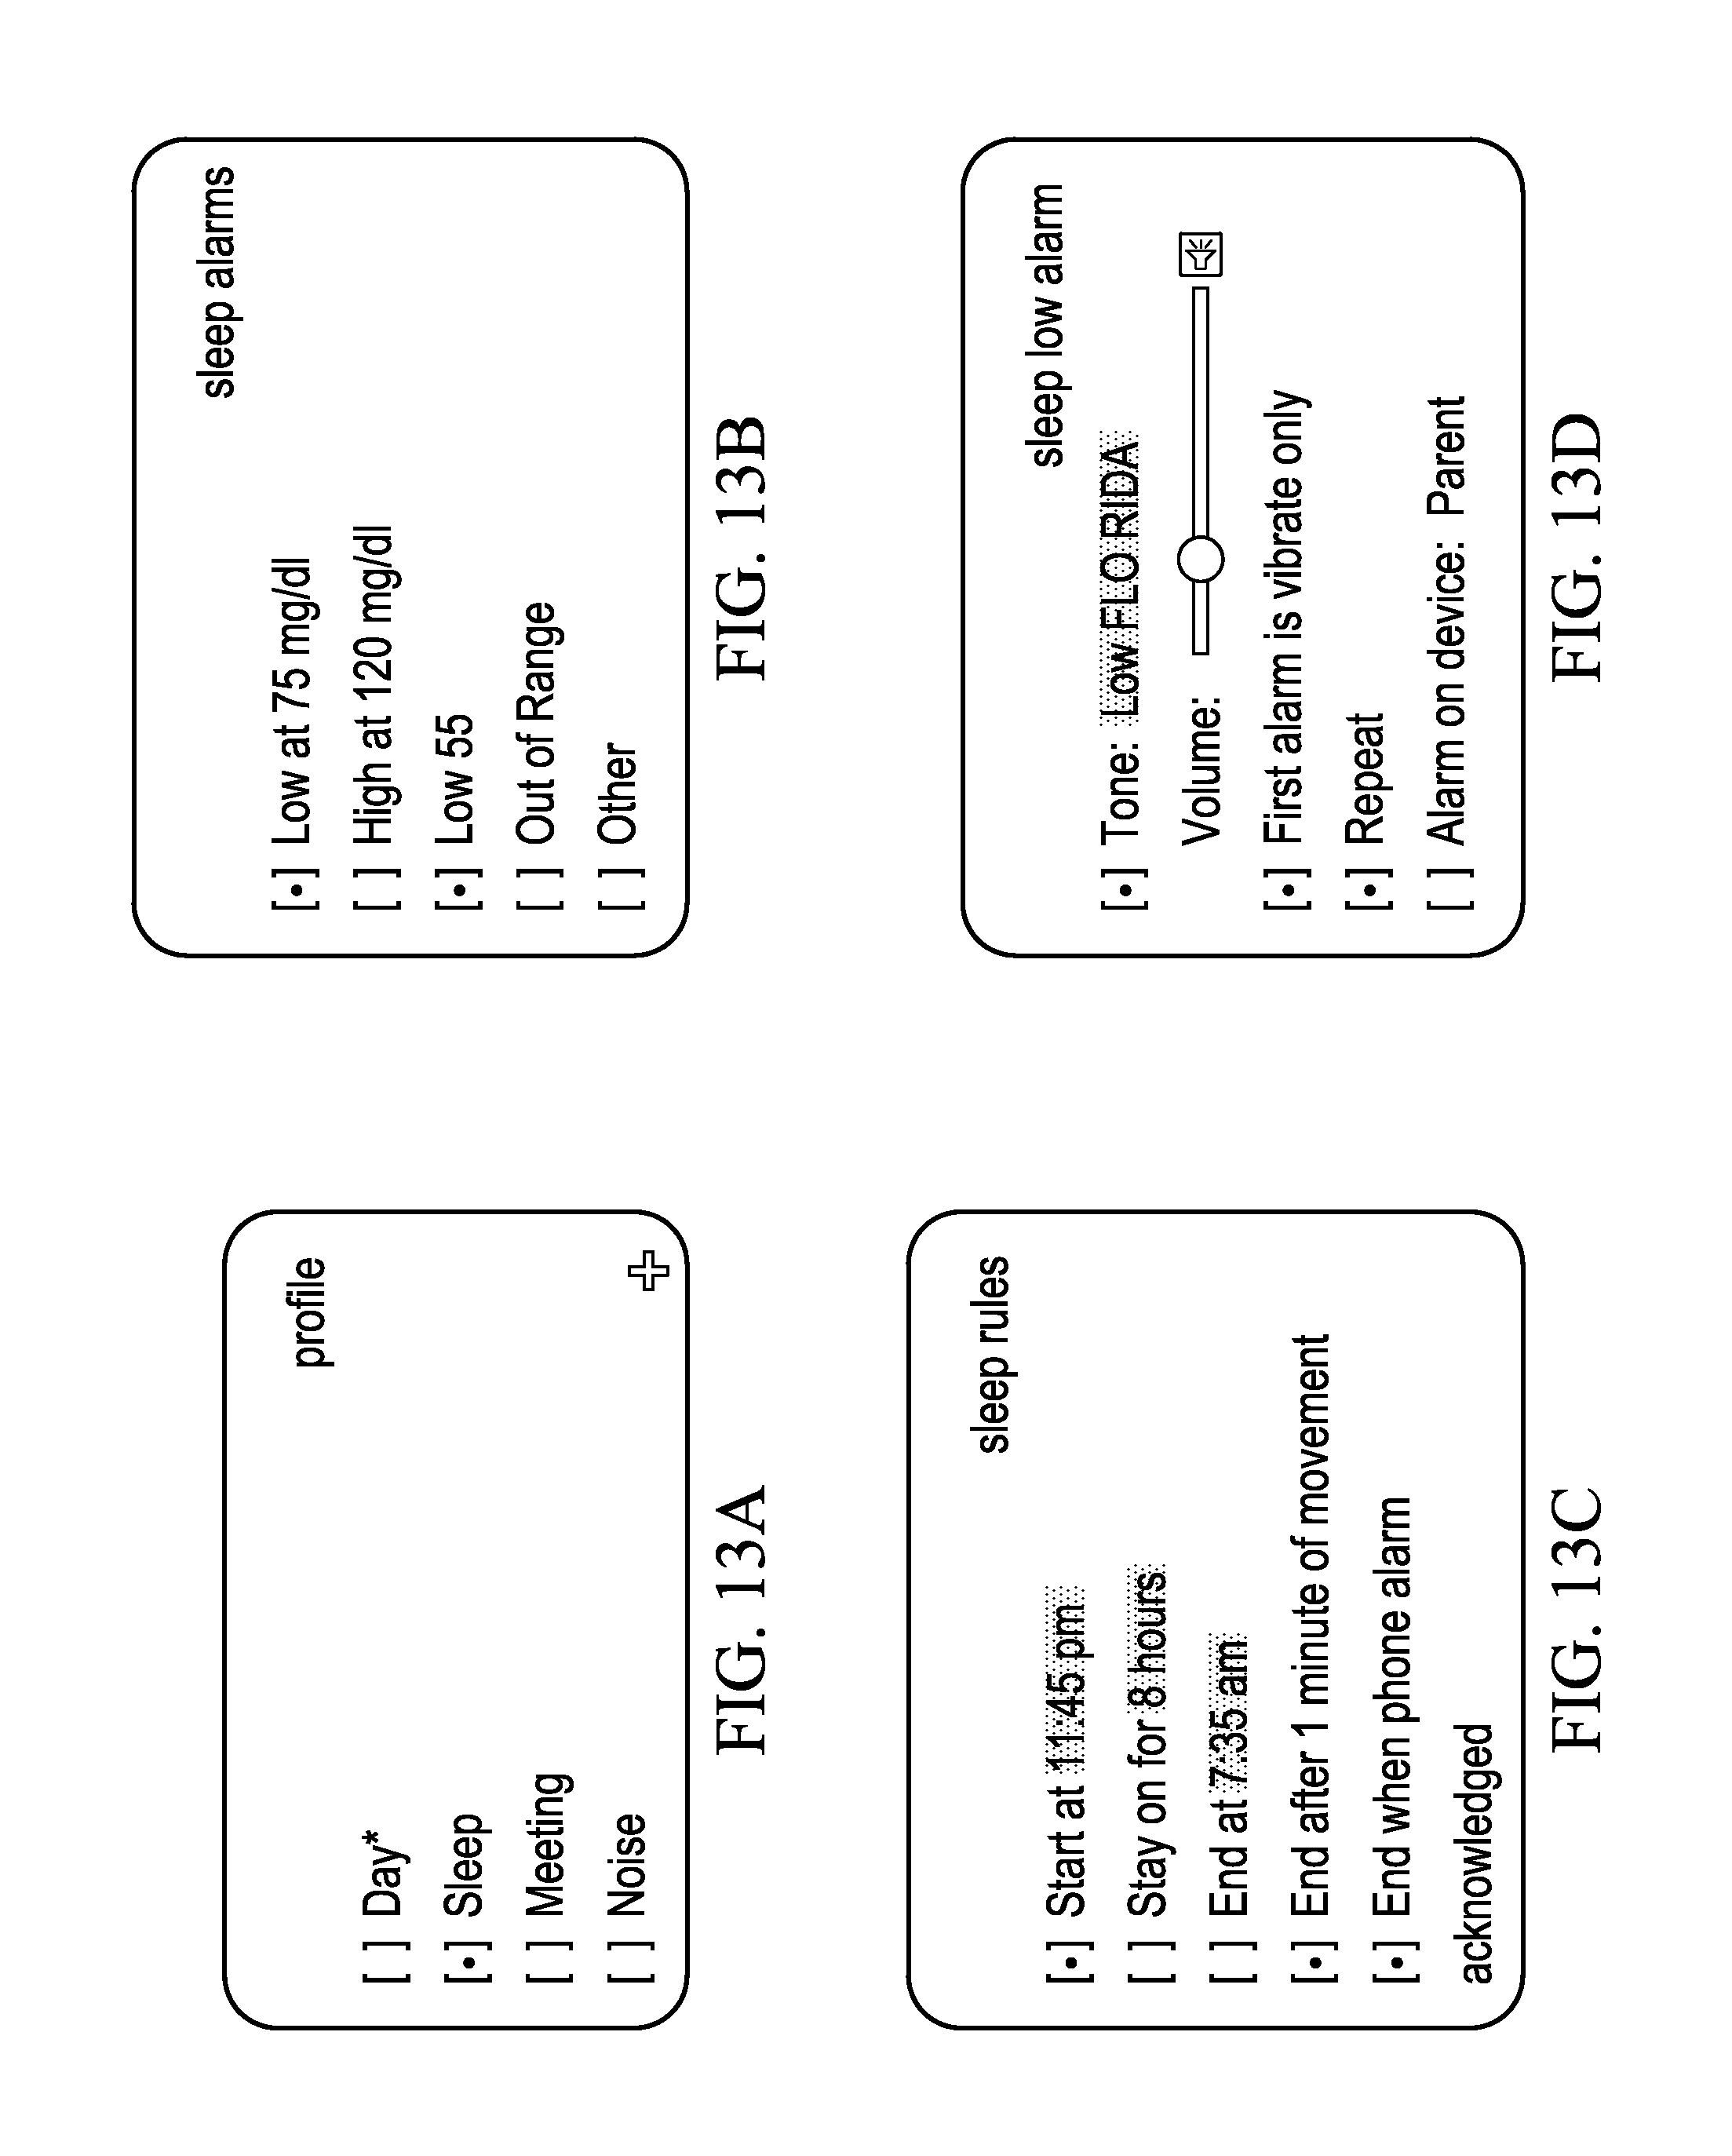 US20140012117A1 - Systems and methods for leveraging